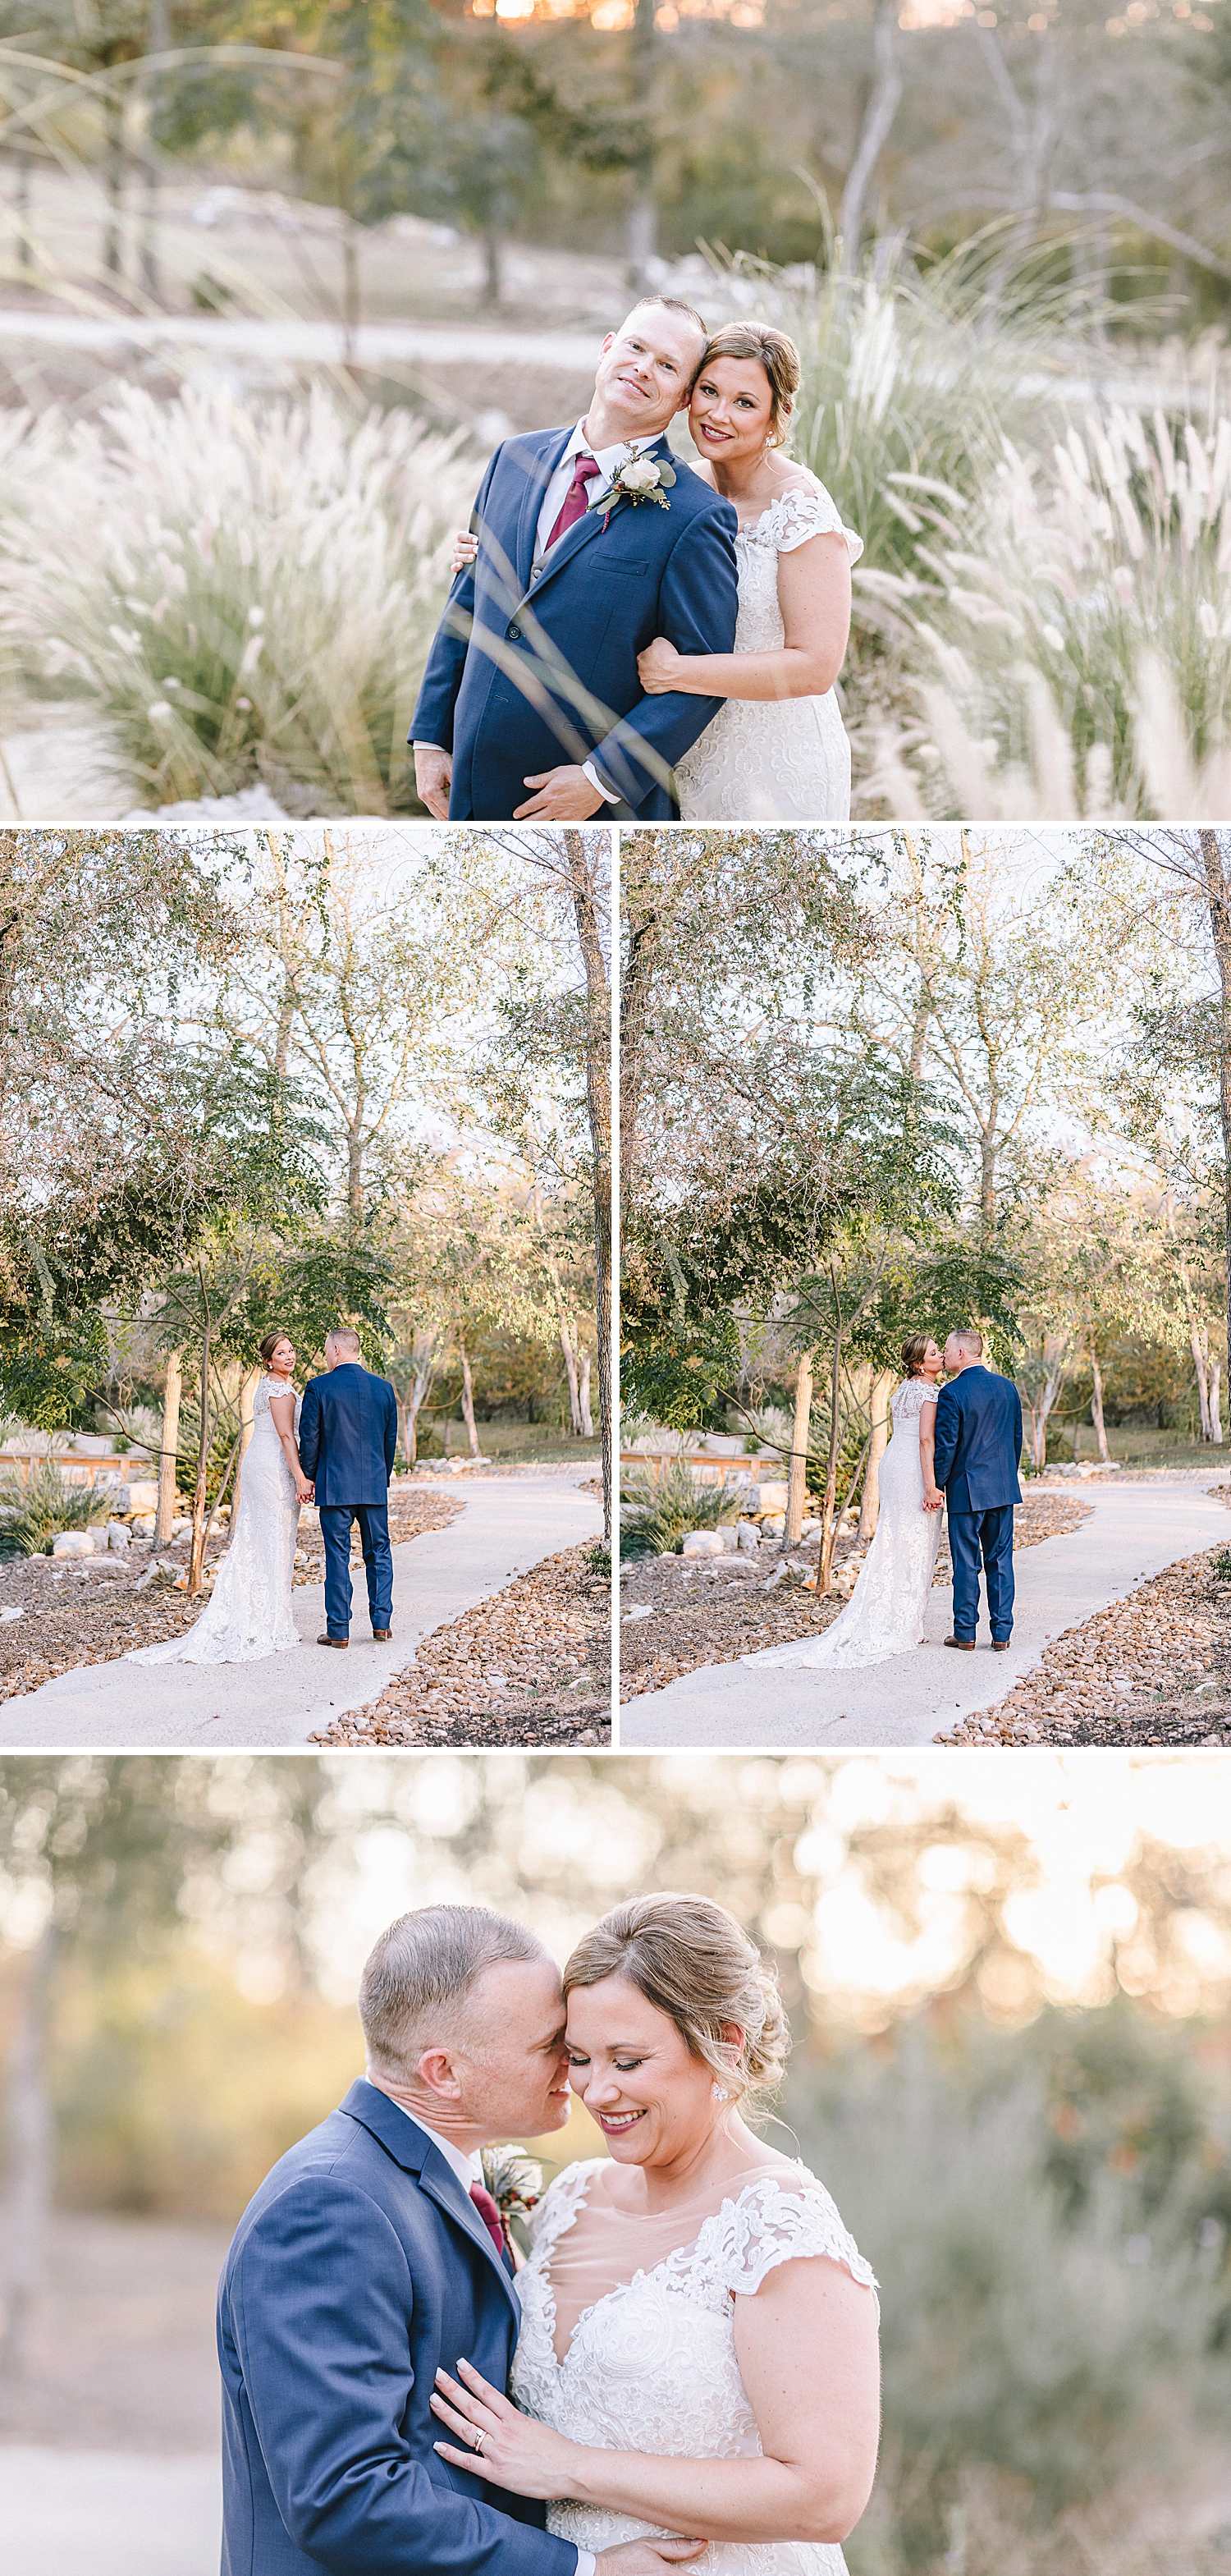 Geronimo-Oaks-Wedding-Venue-Seguin-Texas-Elegant-Navy-Burgundy-Wedding-Carly-Barton-Photography_0046.jpg